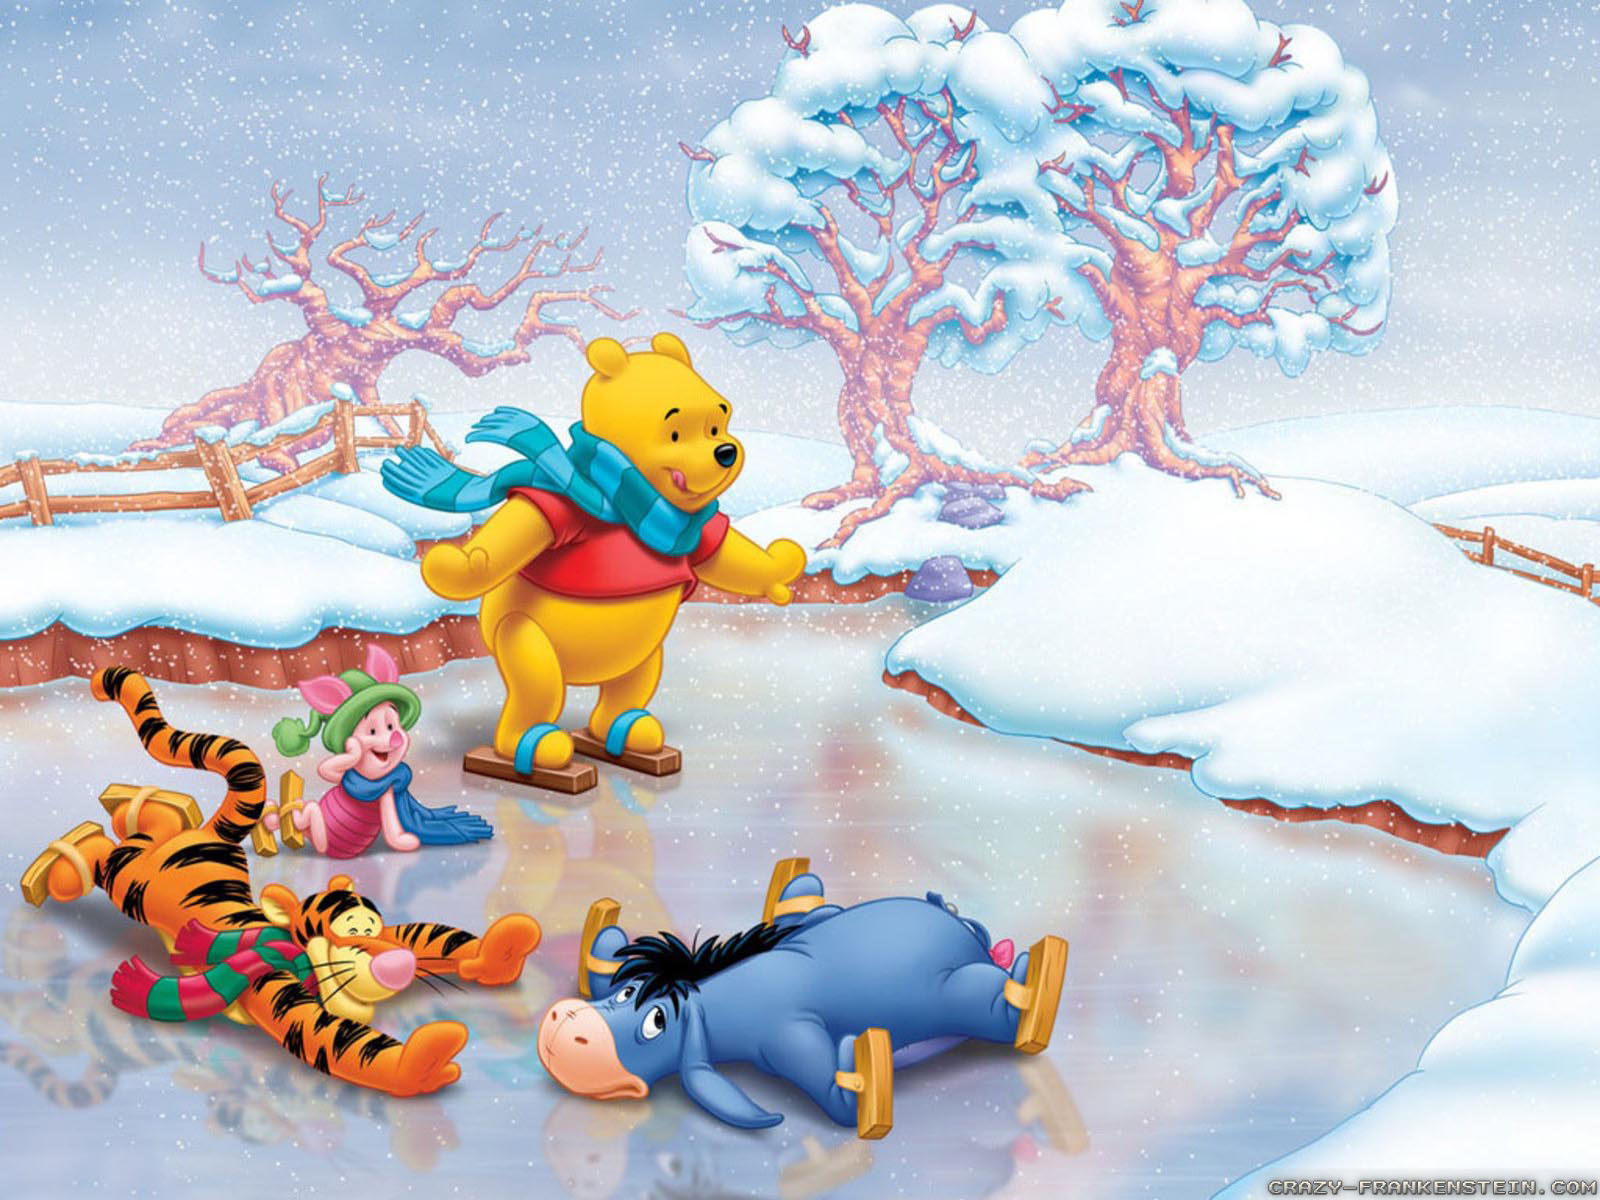 Winnie The Pooh Christmas wallpapers - Crazy Frankenstein